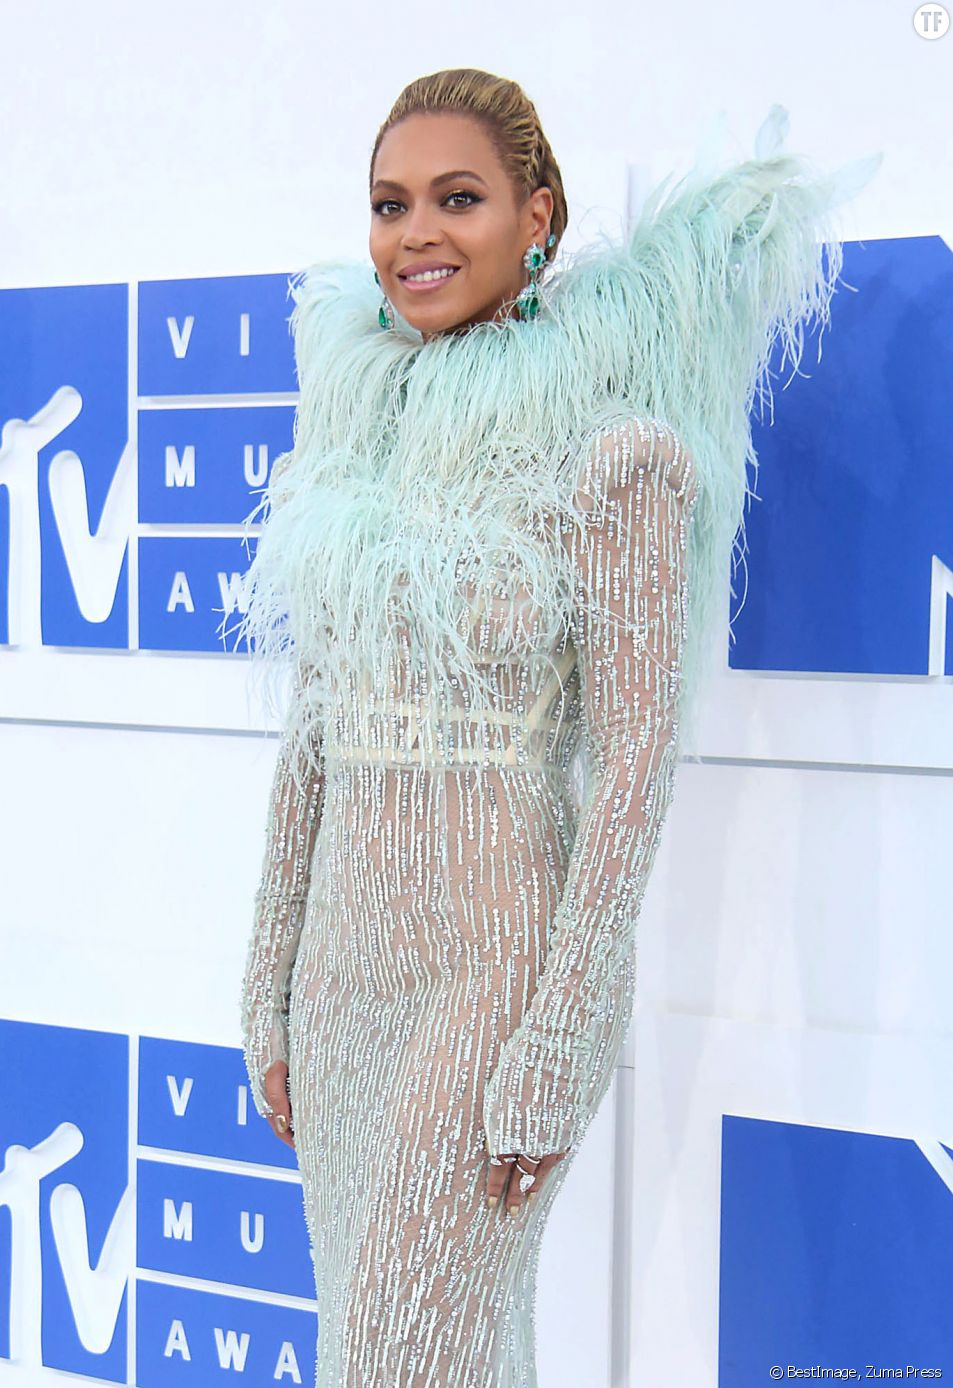 Beyonce Knowles à la soirée des MTV Video Music Awards 2016 au Madison Square Garden à New York, le 29 août 2016